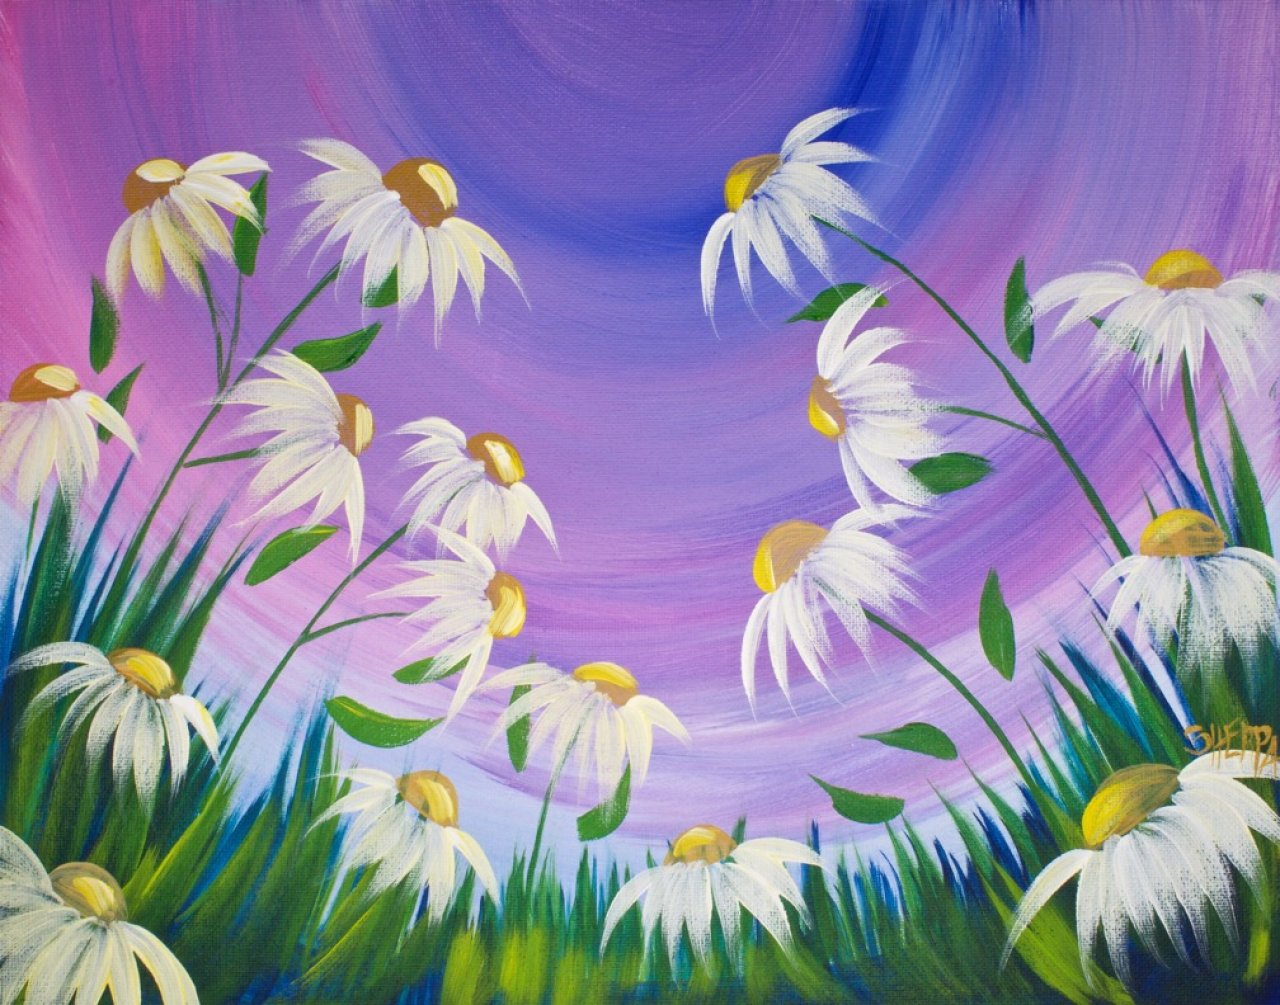 Spring Flowers Acrylic Painting on Canvas for Beginners